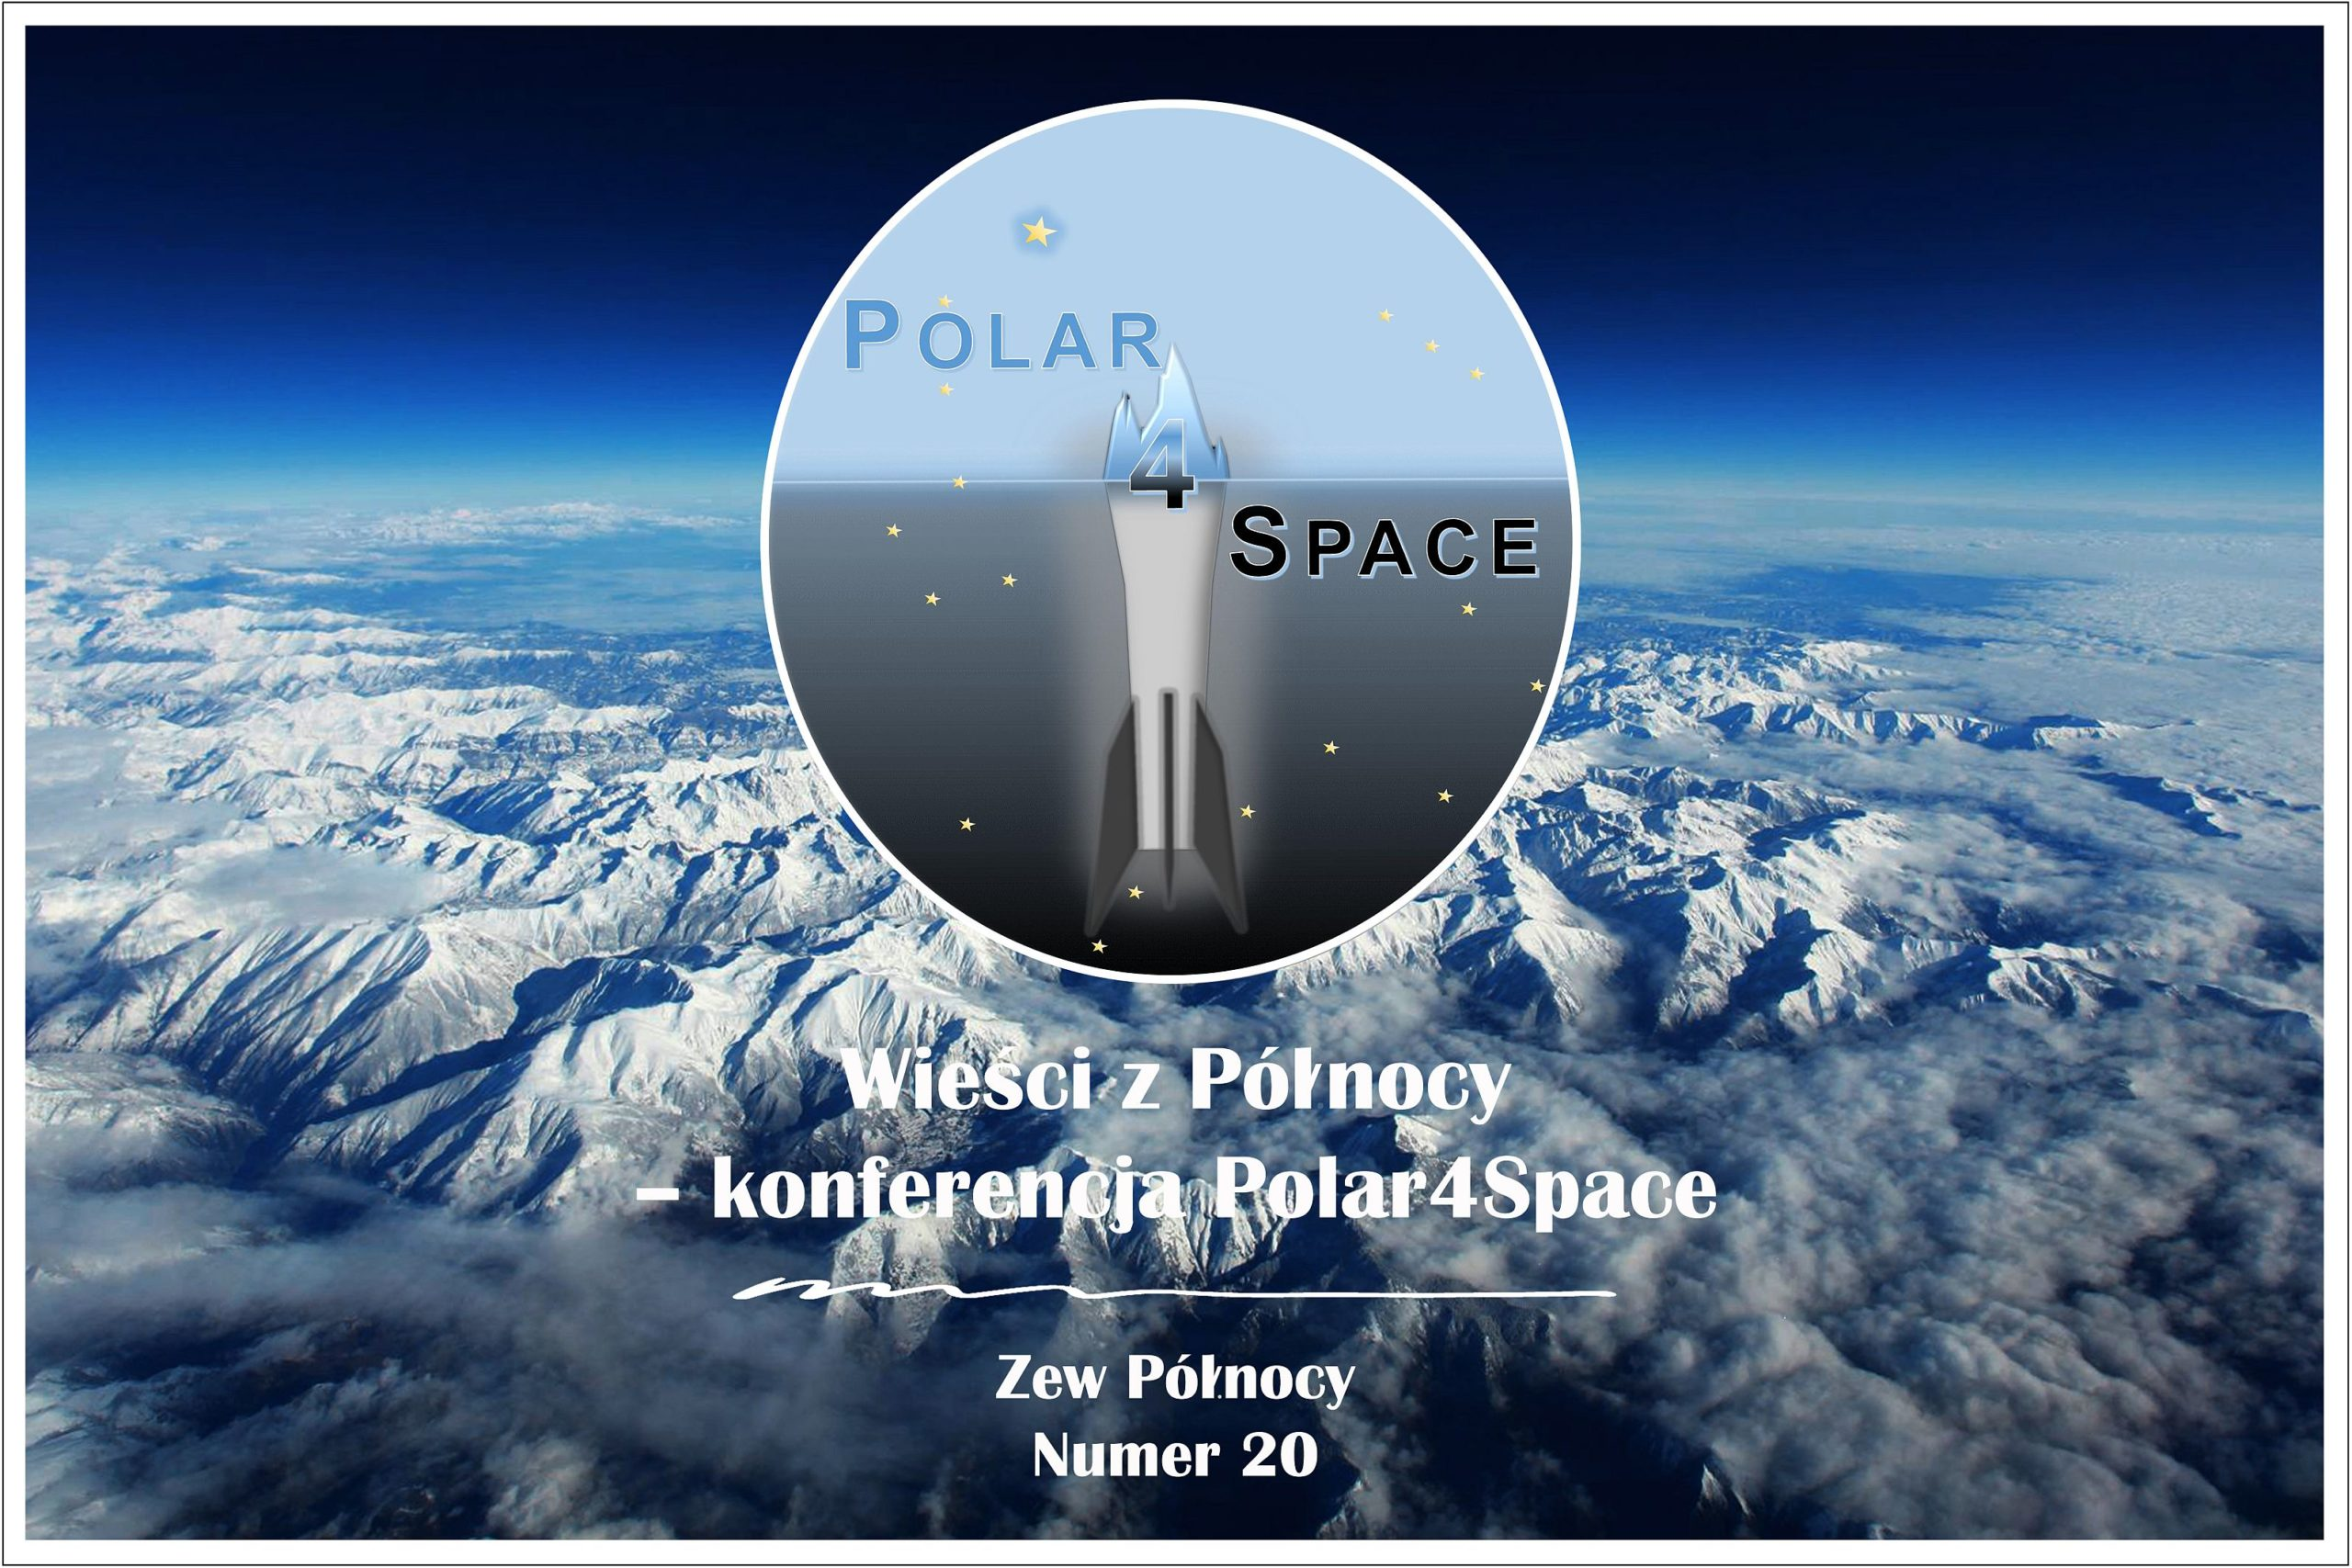 Polar4Space in Zew Północy Magazine